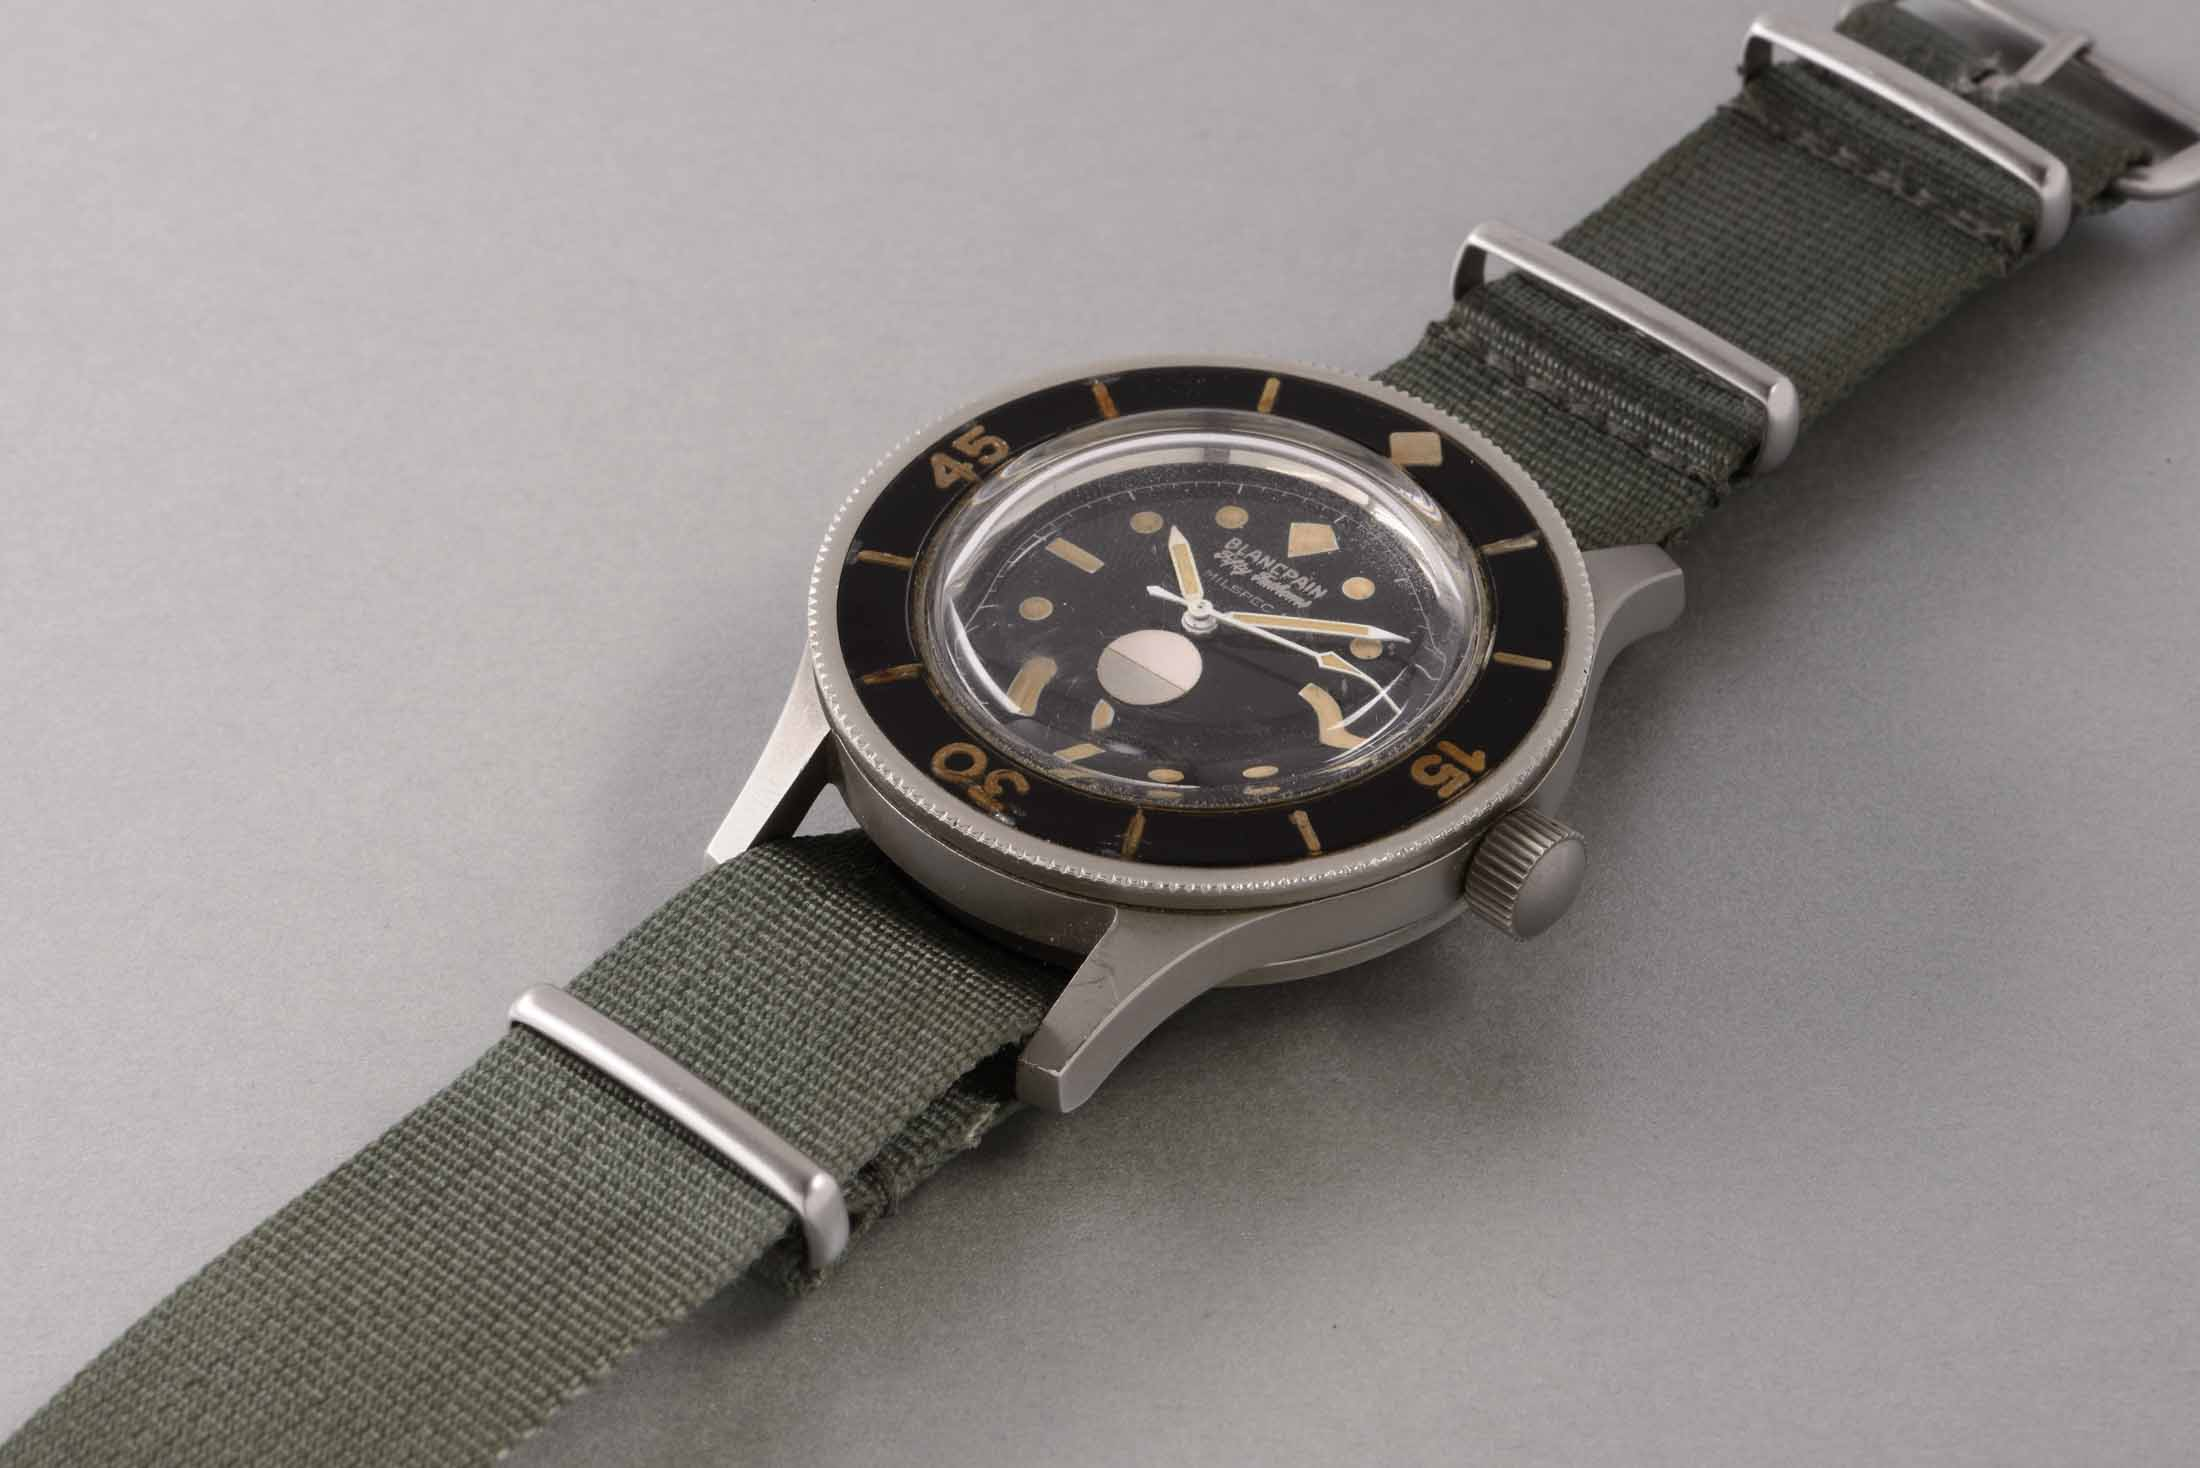 Blancpain Steel Prototype 'Milspec 1' Wristwatch with Center Seconds and Humidity Indicator